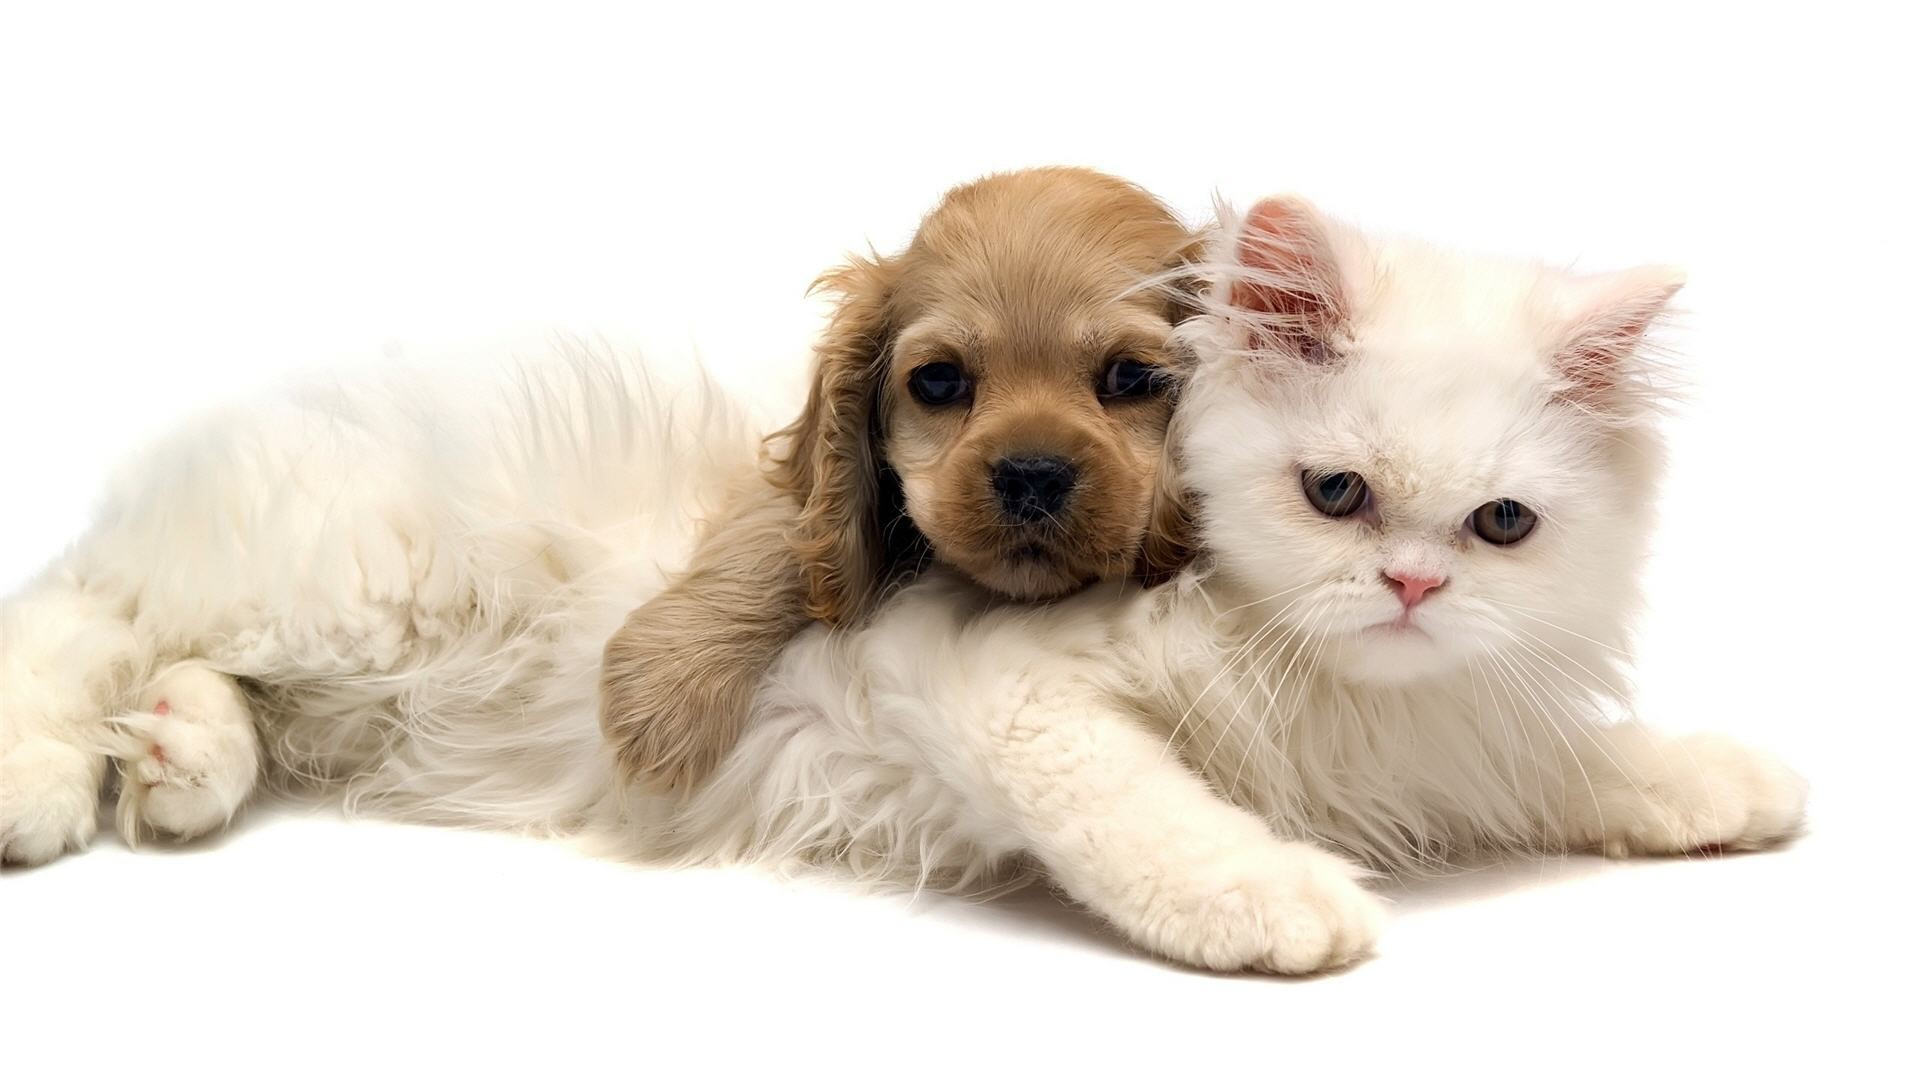 1920x1080 Adorable Cat and Dog Wallpaper | Wallpapers Green Cat Cute And Dog Jpg   | #